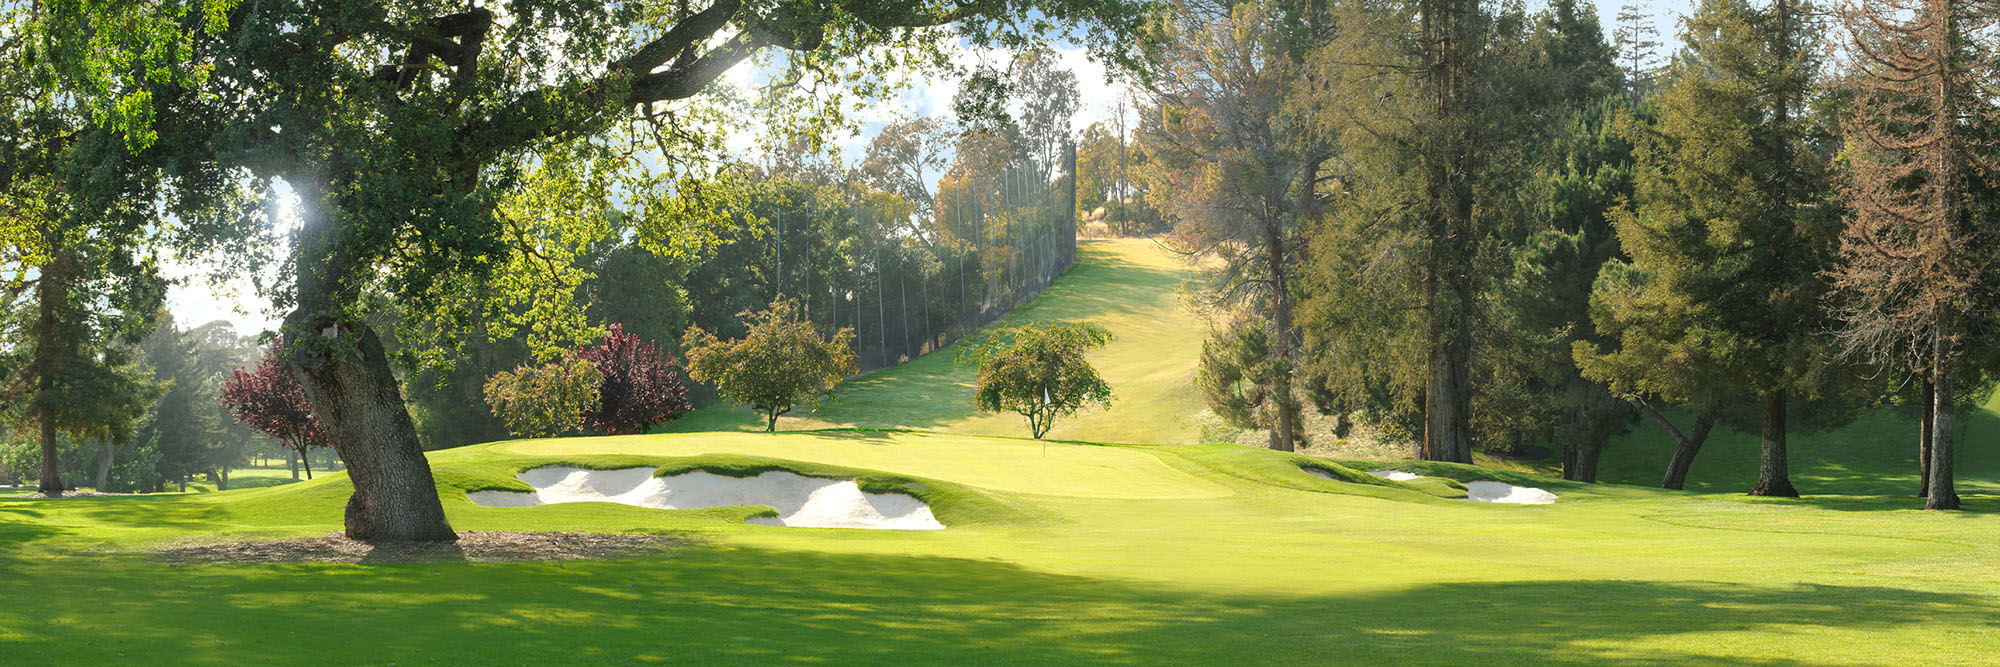 Golf Course Image - San Jose Country Club No. 5